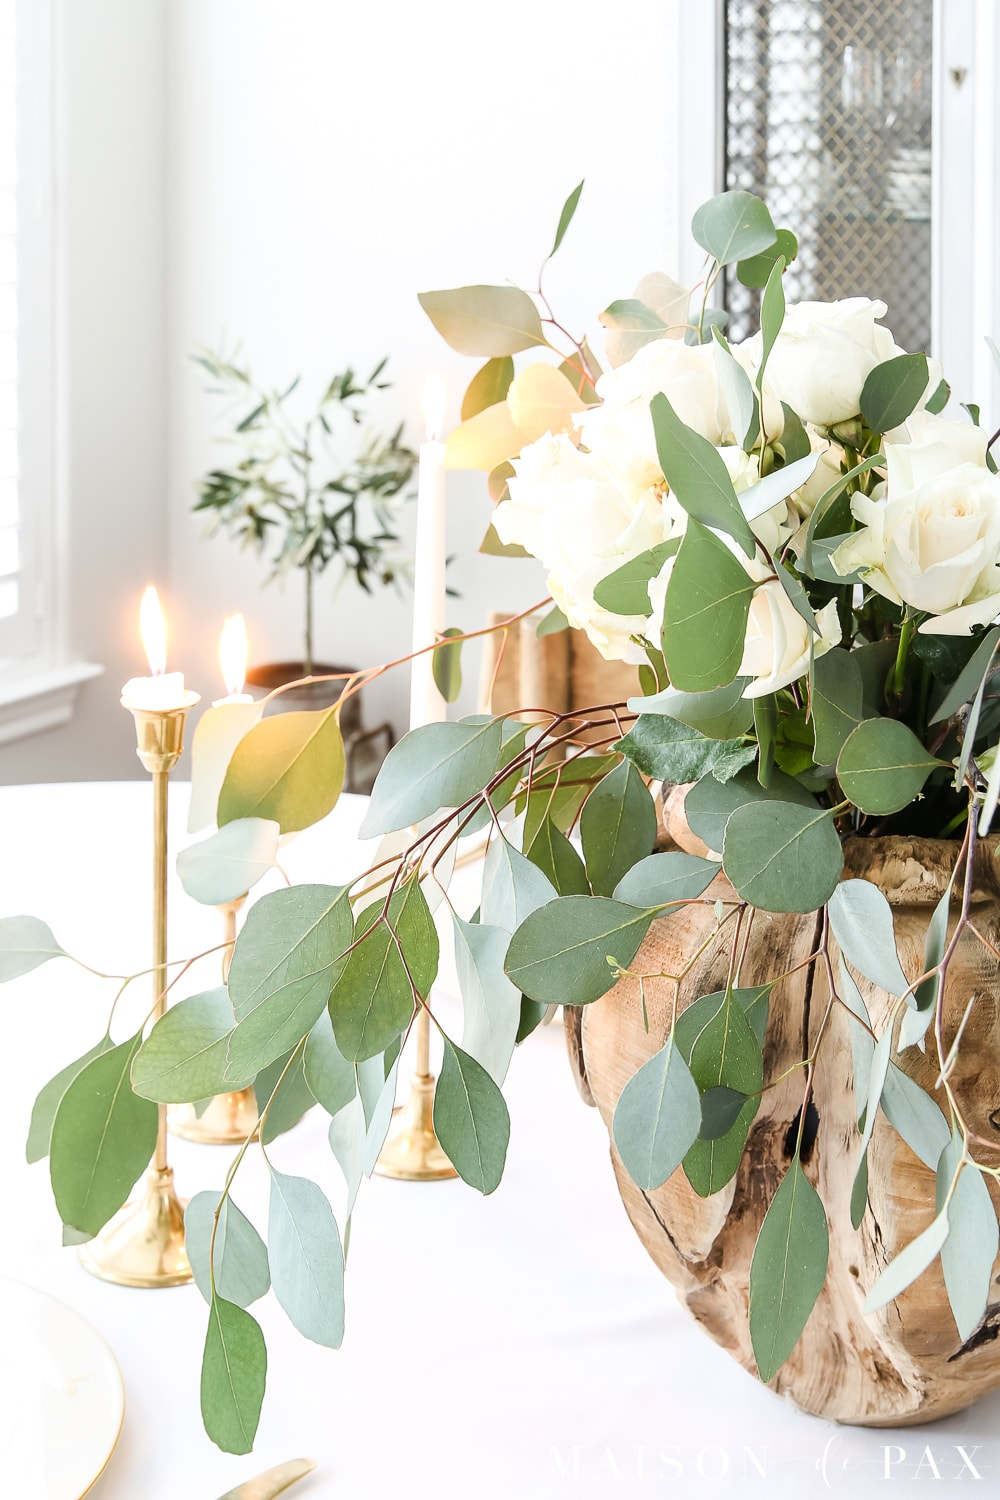 How to create a romantic rose and eucalpytus centerpiece: this tutorial for a romantic centerpiece shows you step by step how to make a gorgeous rose centerpiece for Easter or any spring table. #roses #eucalyptus #centerpiece #springcenterpiece #romanticcenterpiece #eastertable #tablescape #rosecenterpiece #eastertablescape #springtablescape #springtablescape #romantictablescape